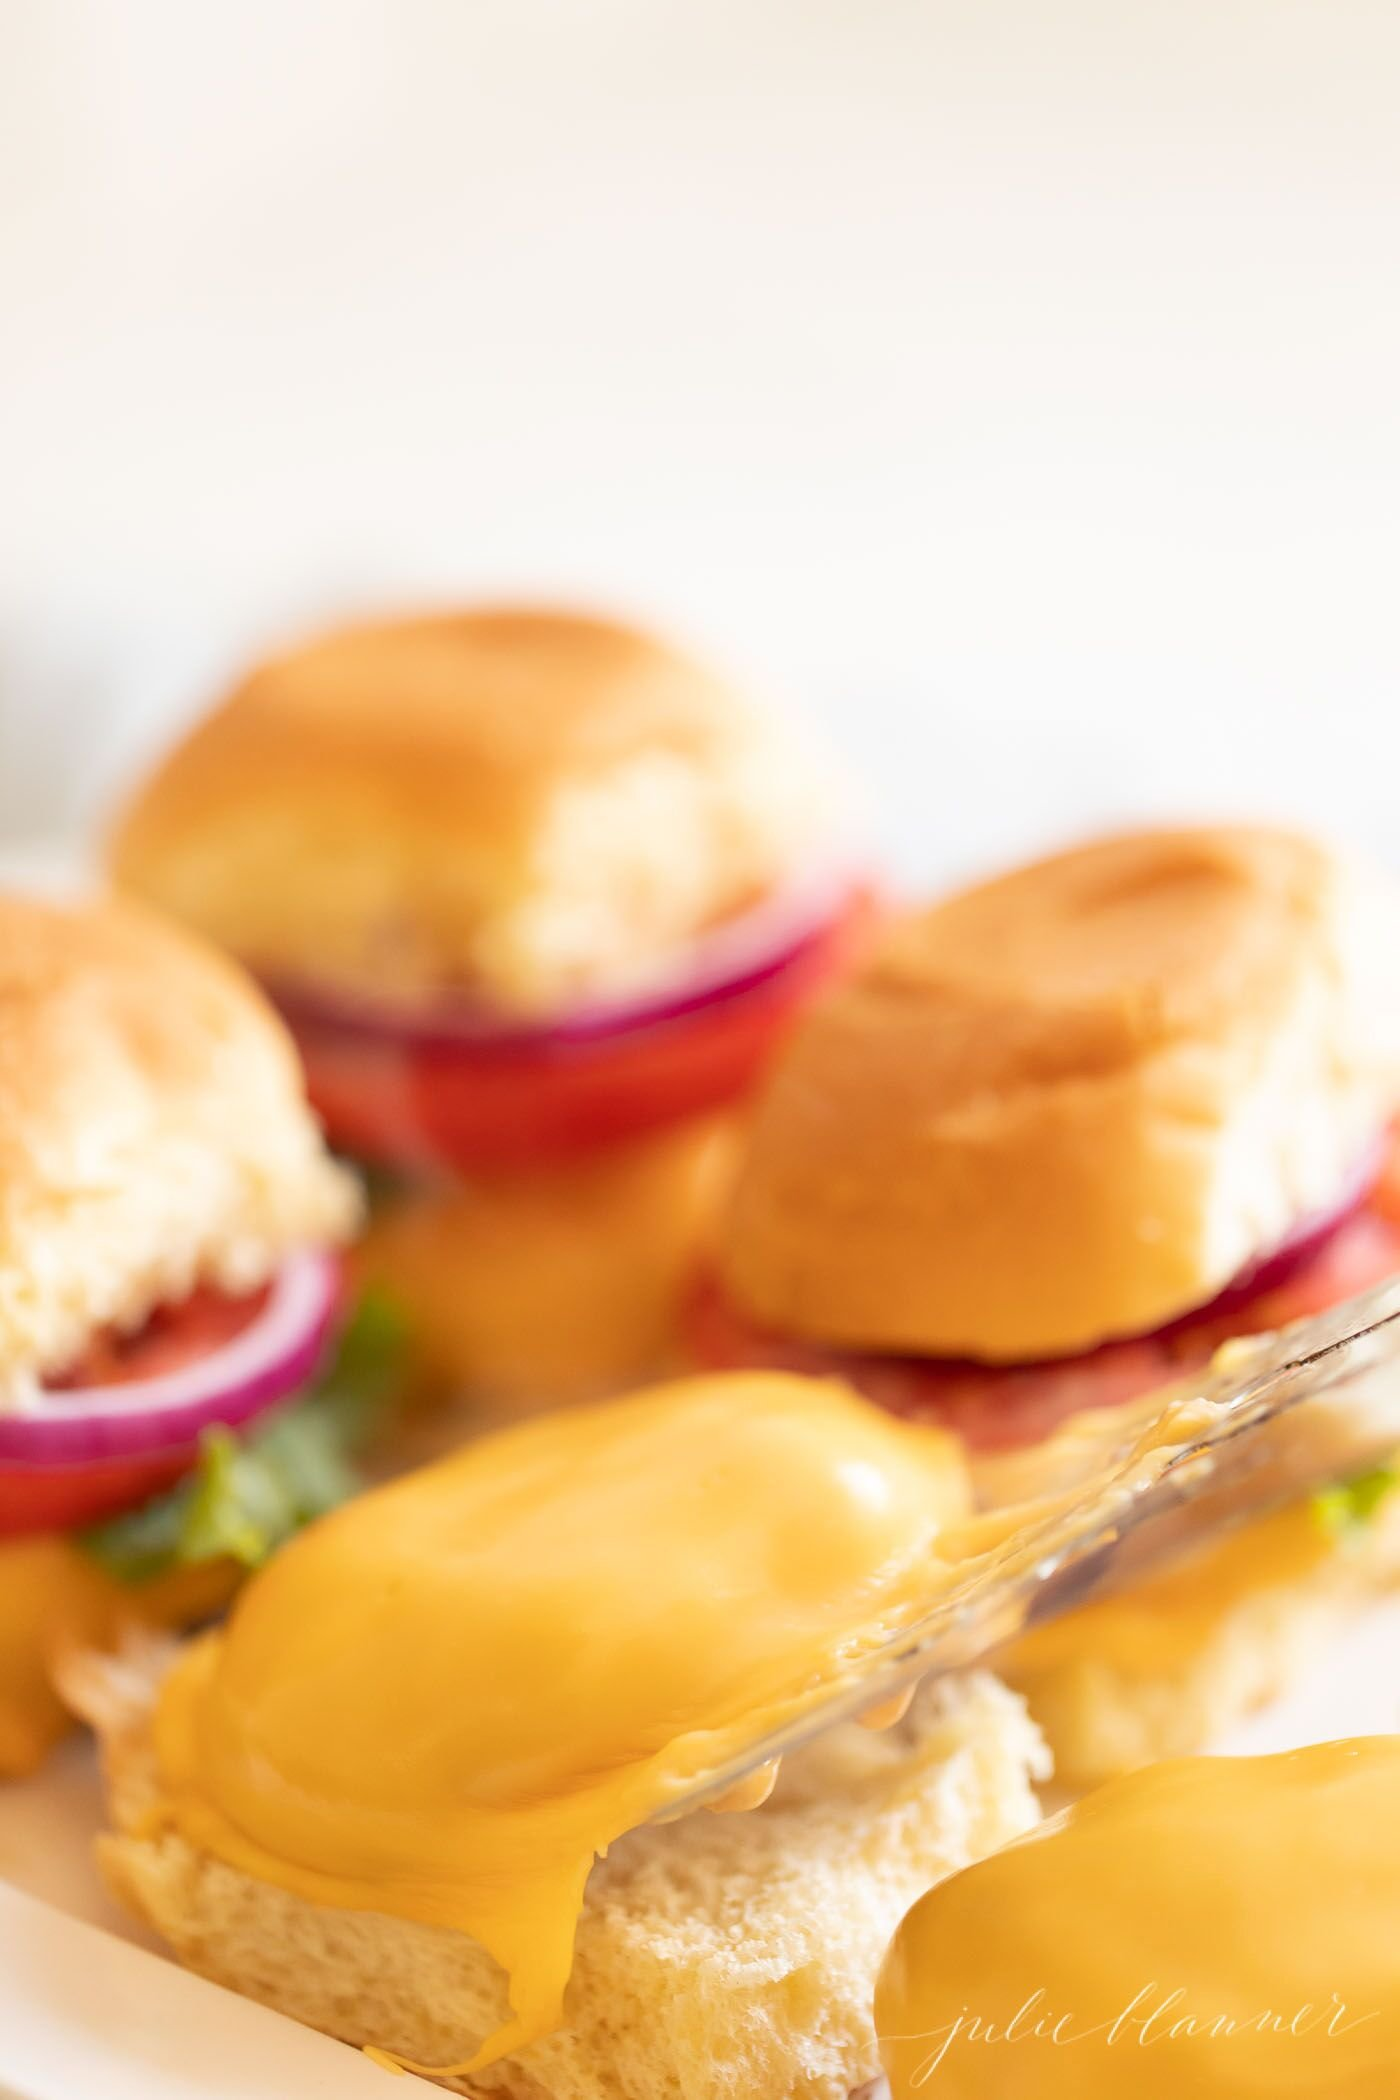 A group of 4 sliders, with patty covered in cheese in the foreground. #sliders.